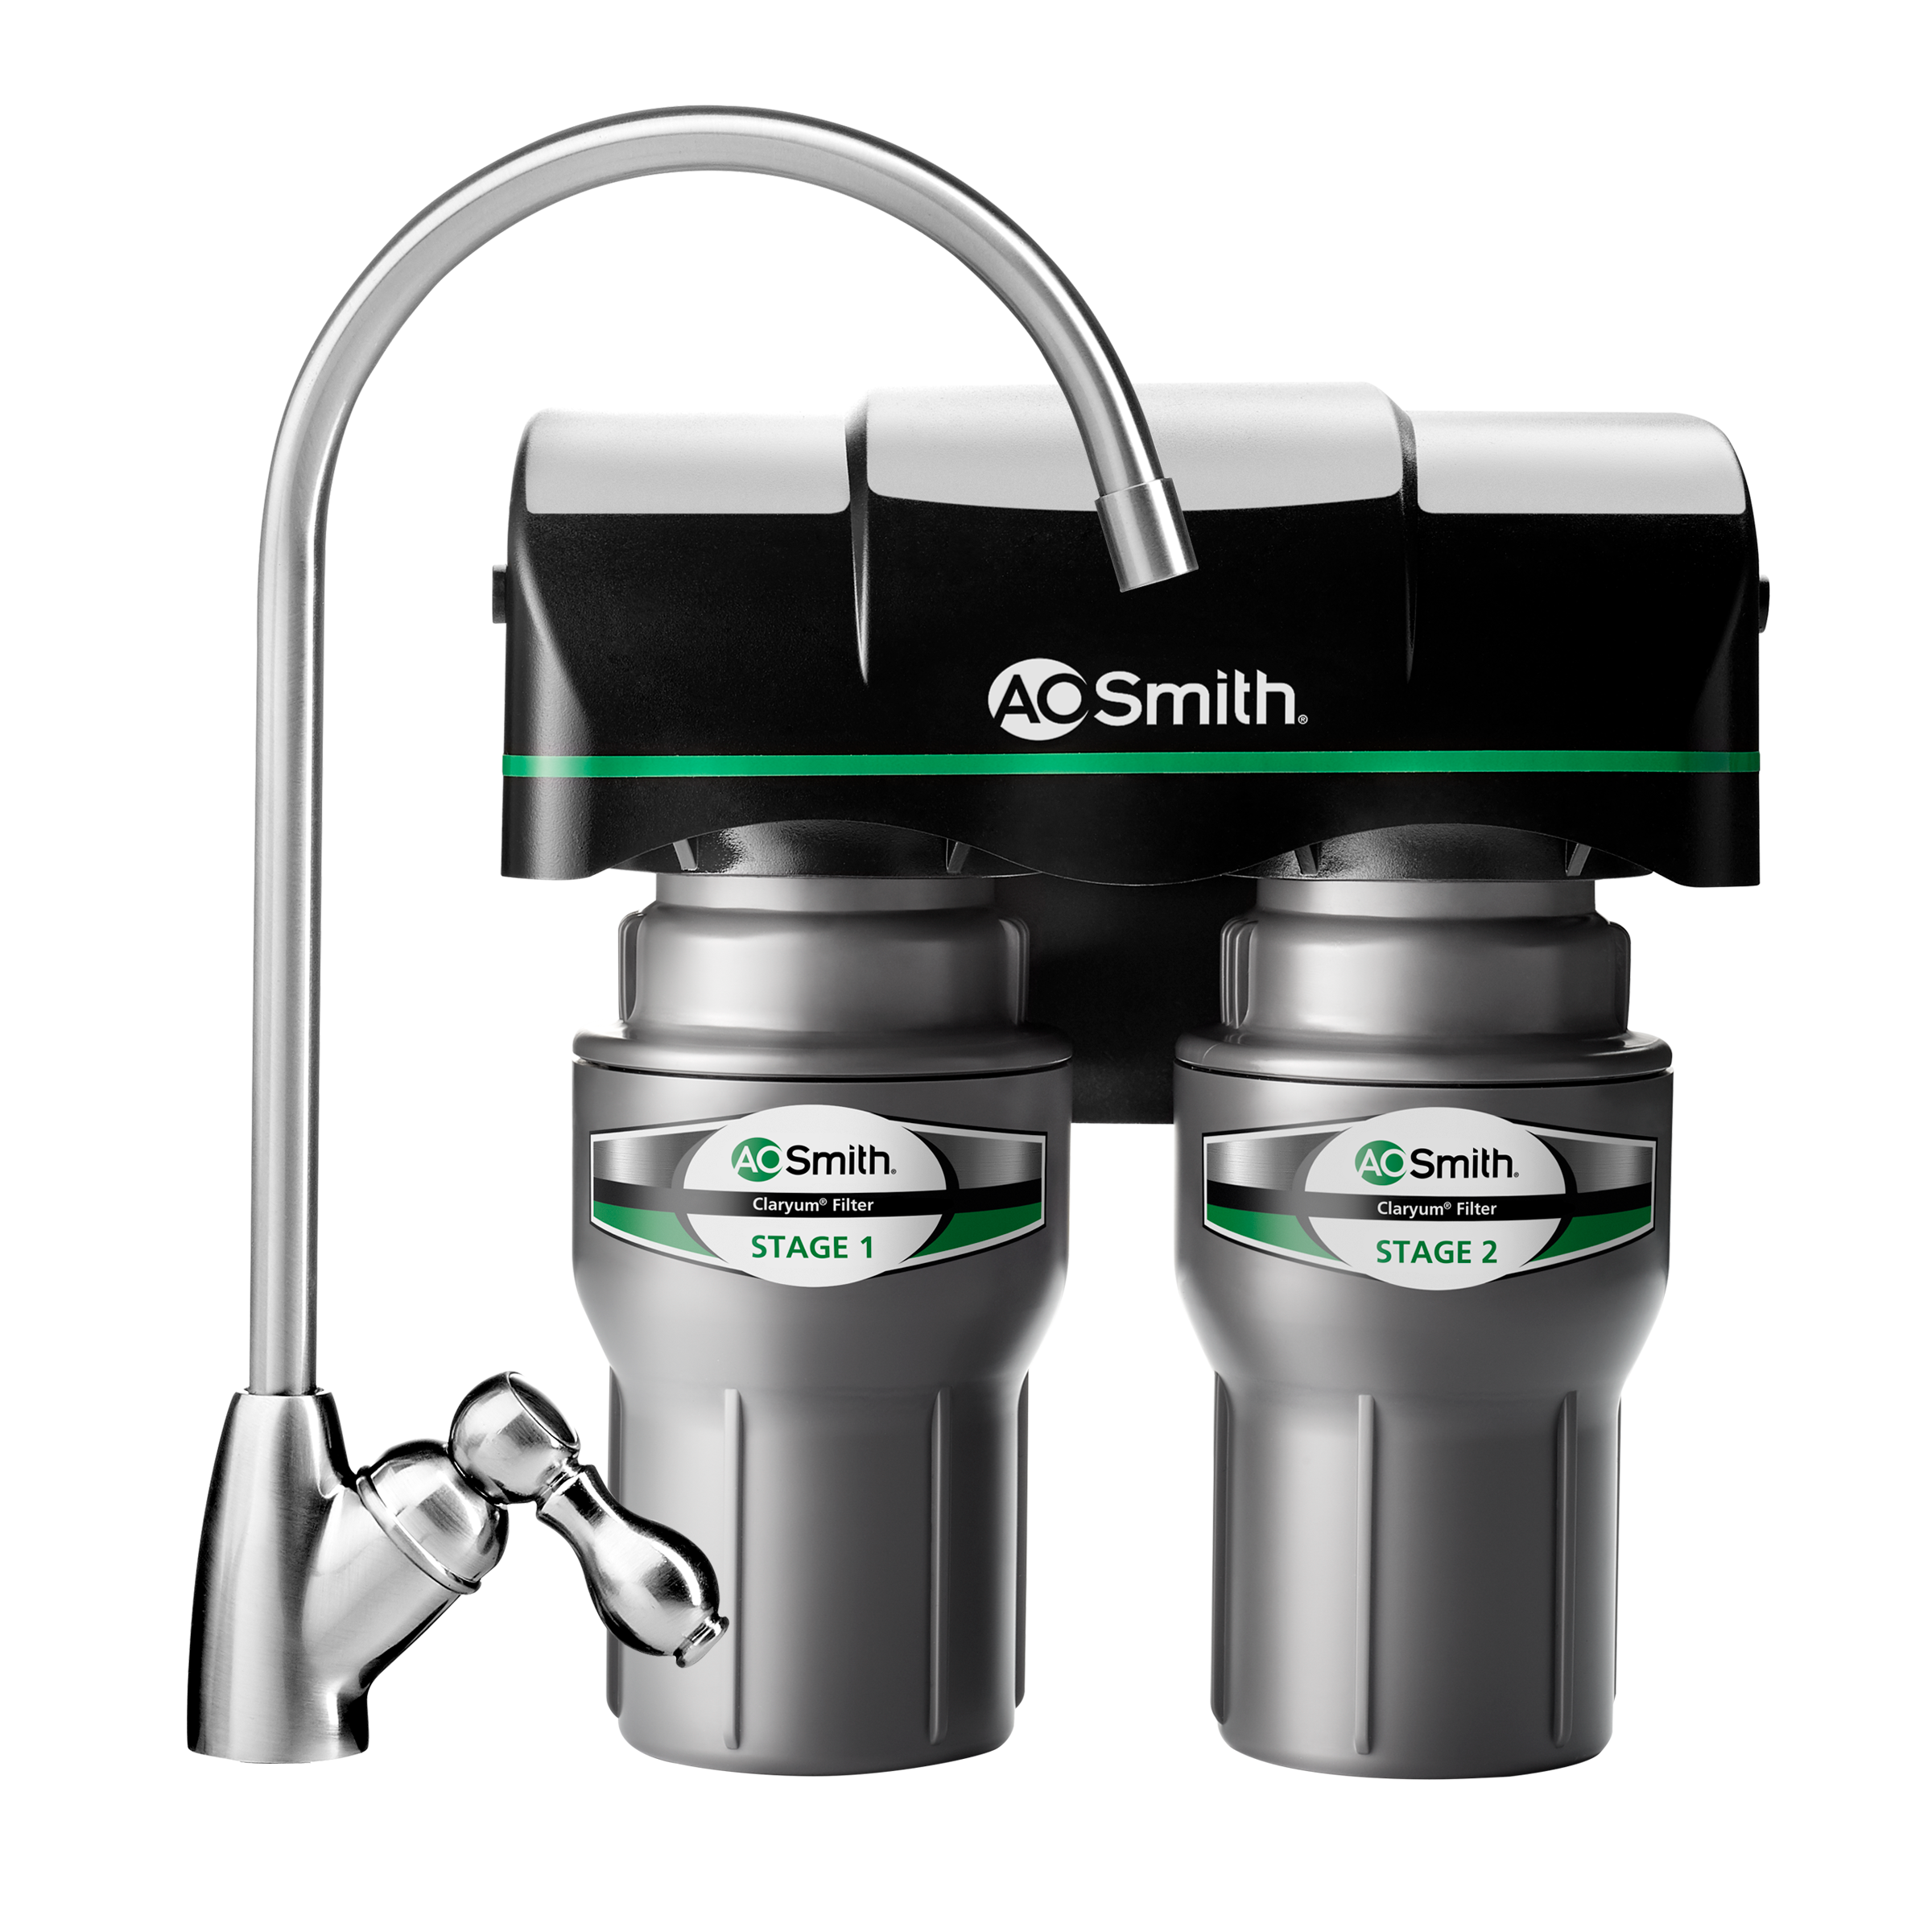 Faucet clipart water treatment. A o smith heaters